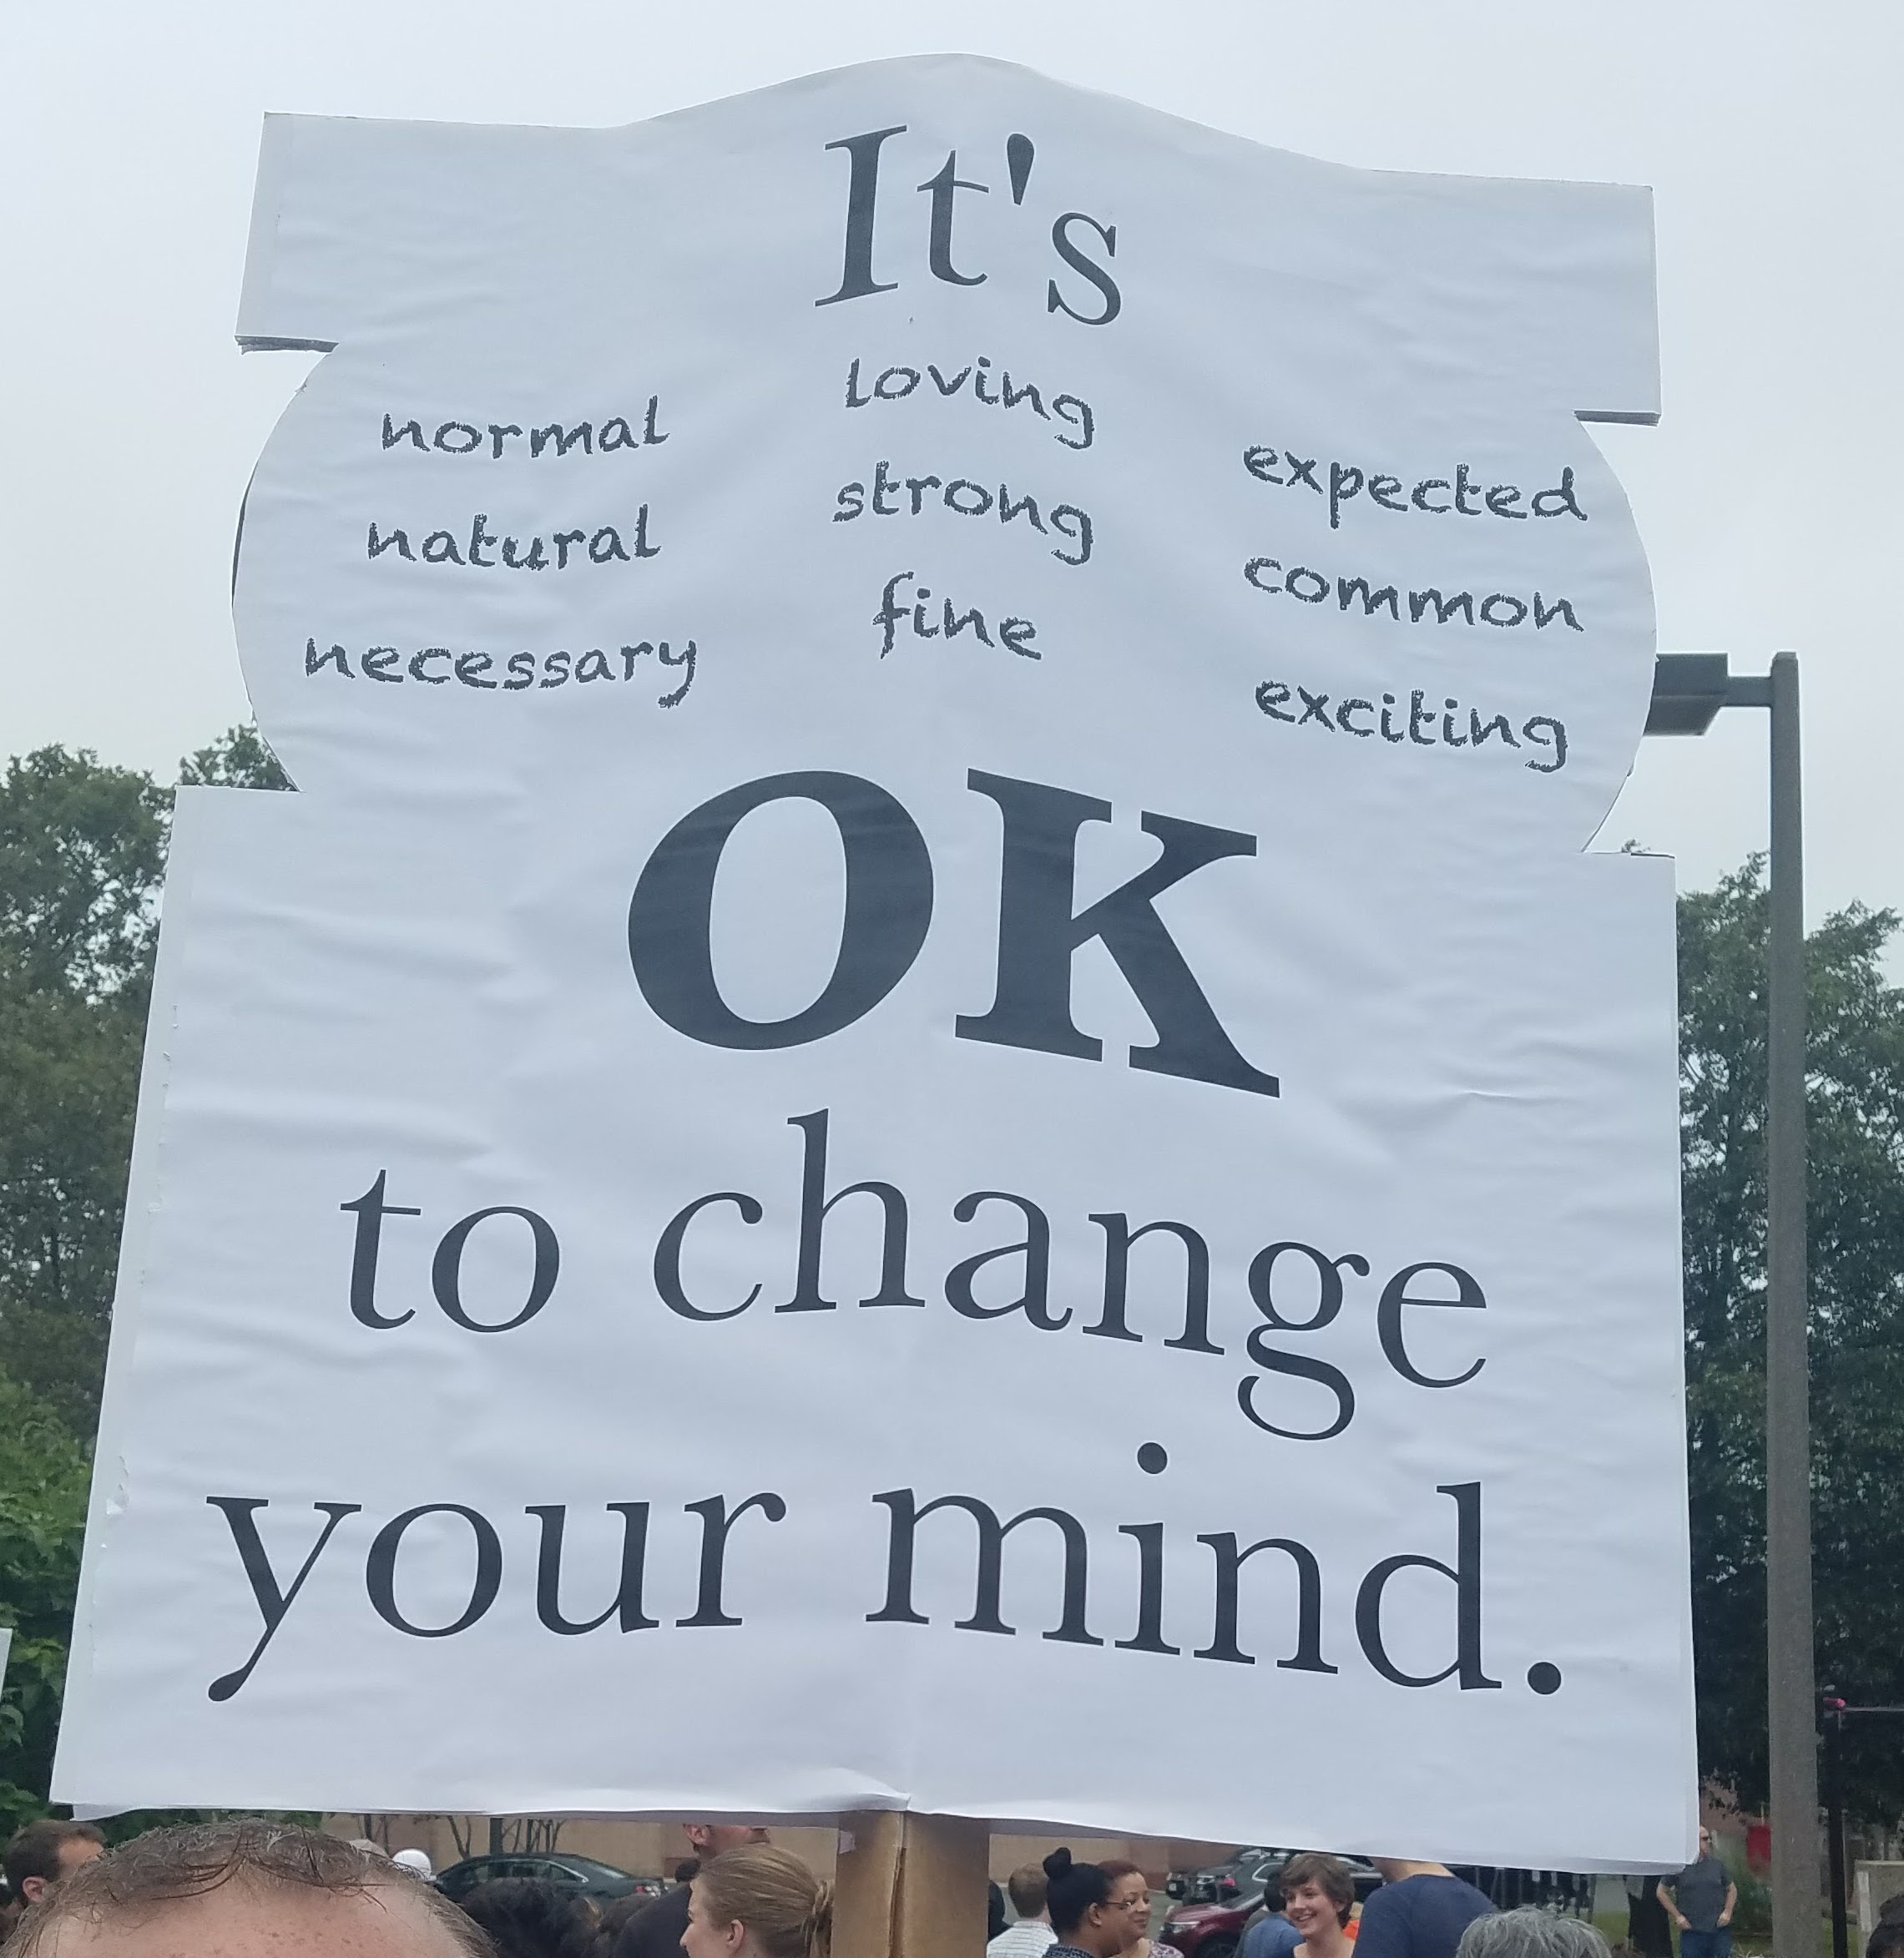 A sign from the anti-supremacy march in Boston on August 19, 2017: It's ok to change your mind.